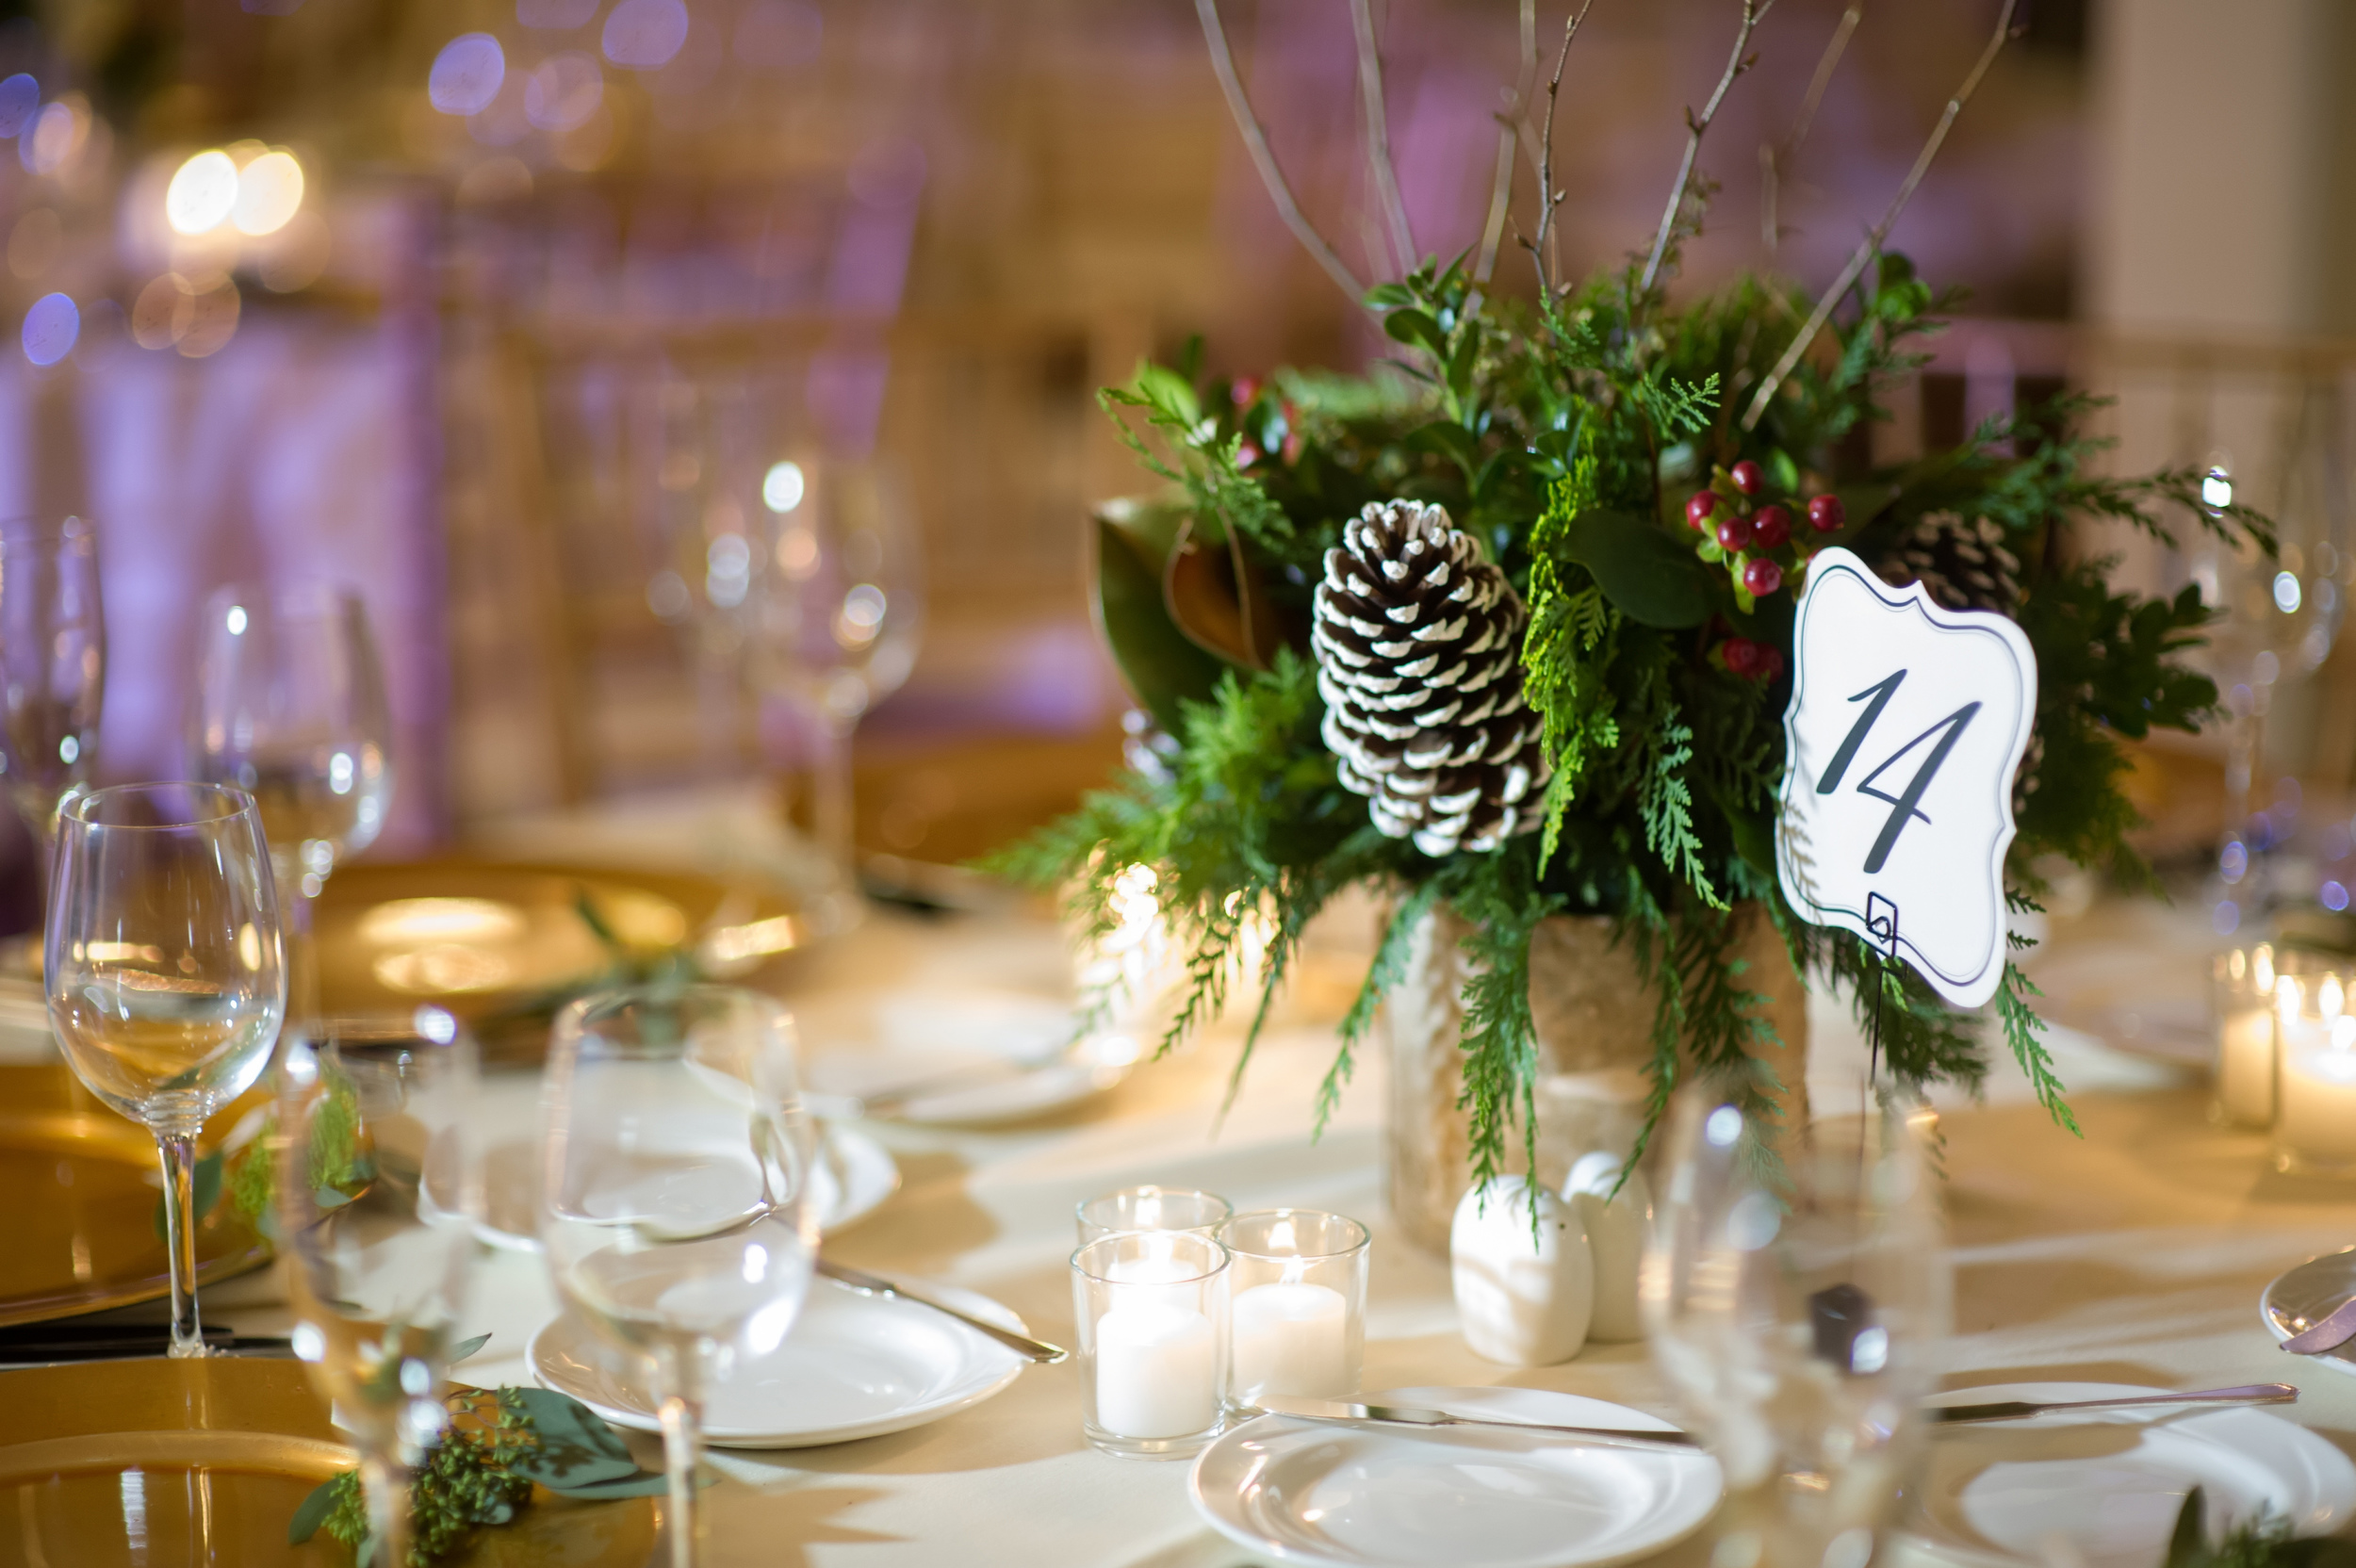 Tupper Manor Winter Wedding | The Gallivant